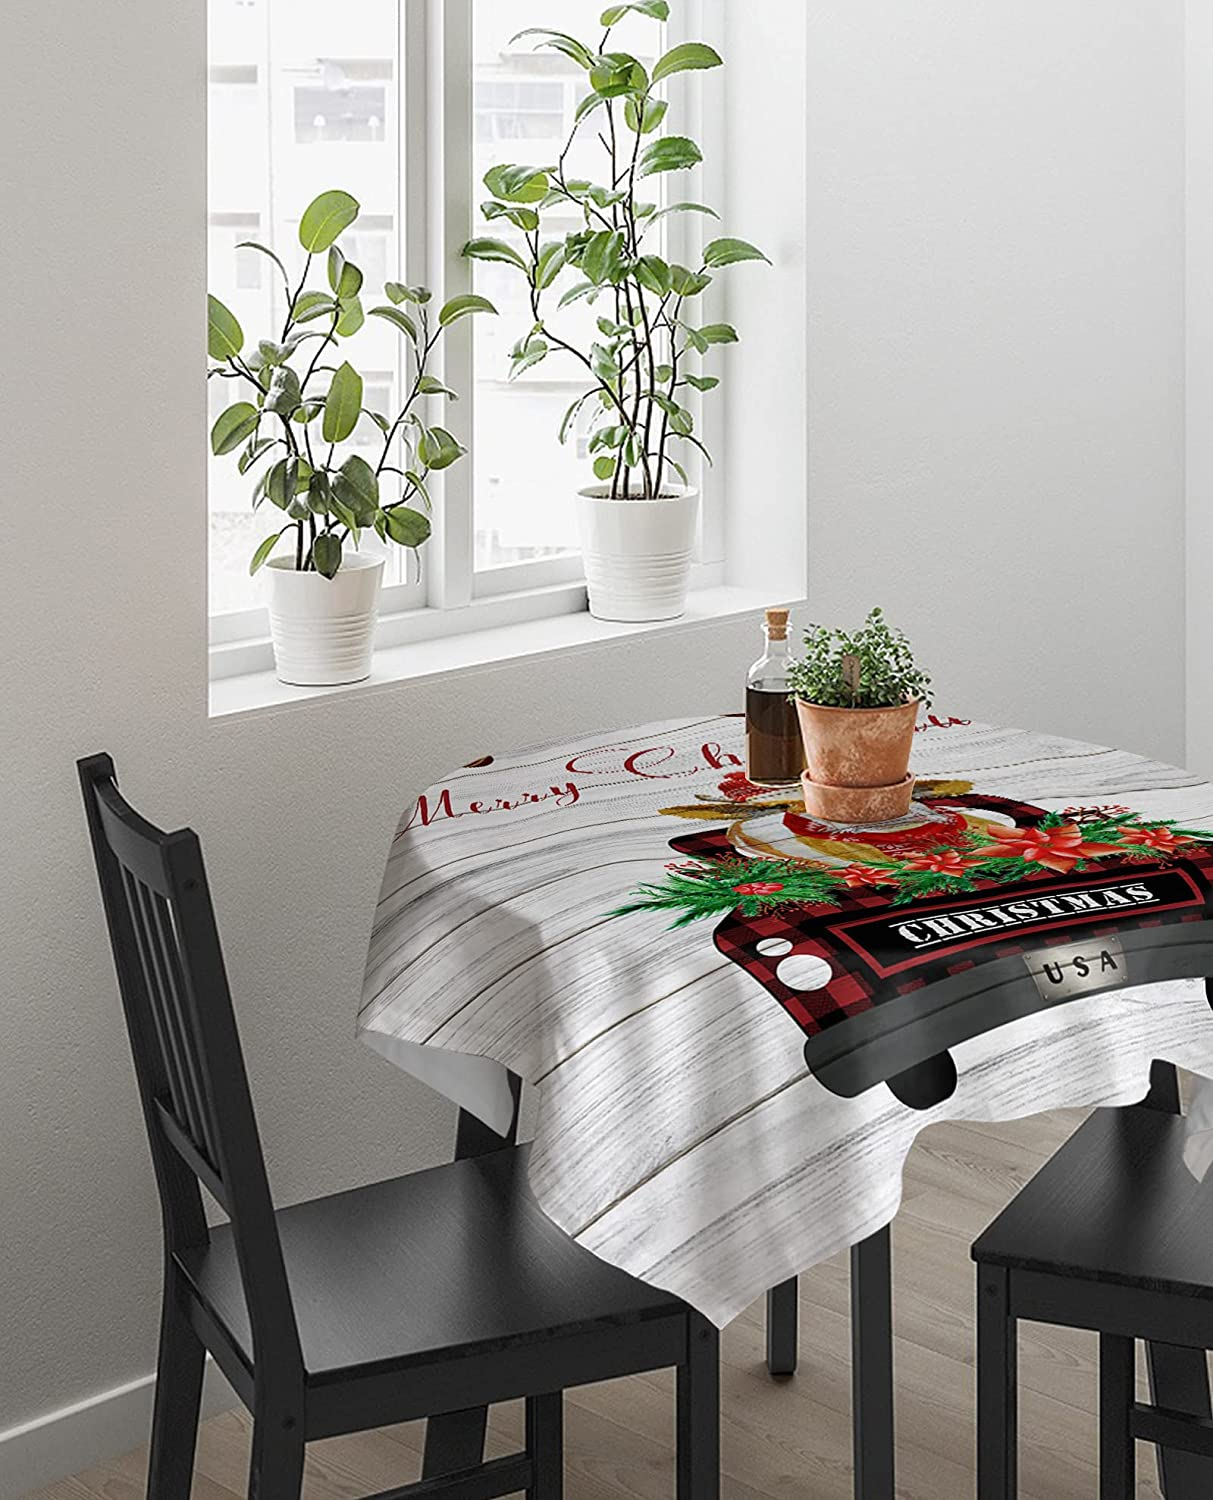 OUR WINGS Tablecloth Washable Table Dinning Free Shipping Cheap Bargain Gift Kitchen Nashville-Davidson Mall for Ta Cover